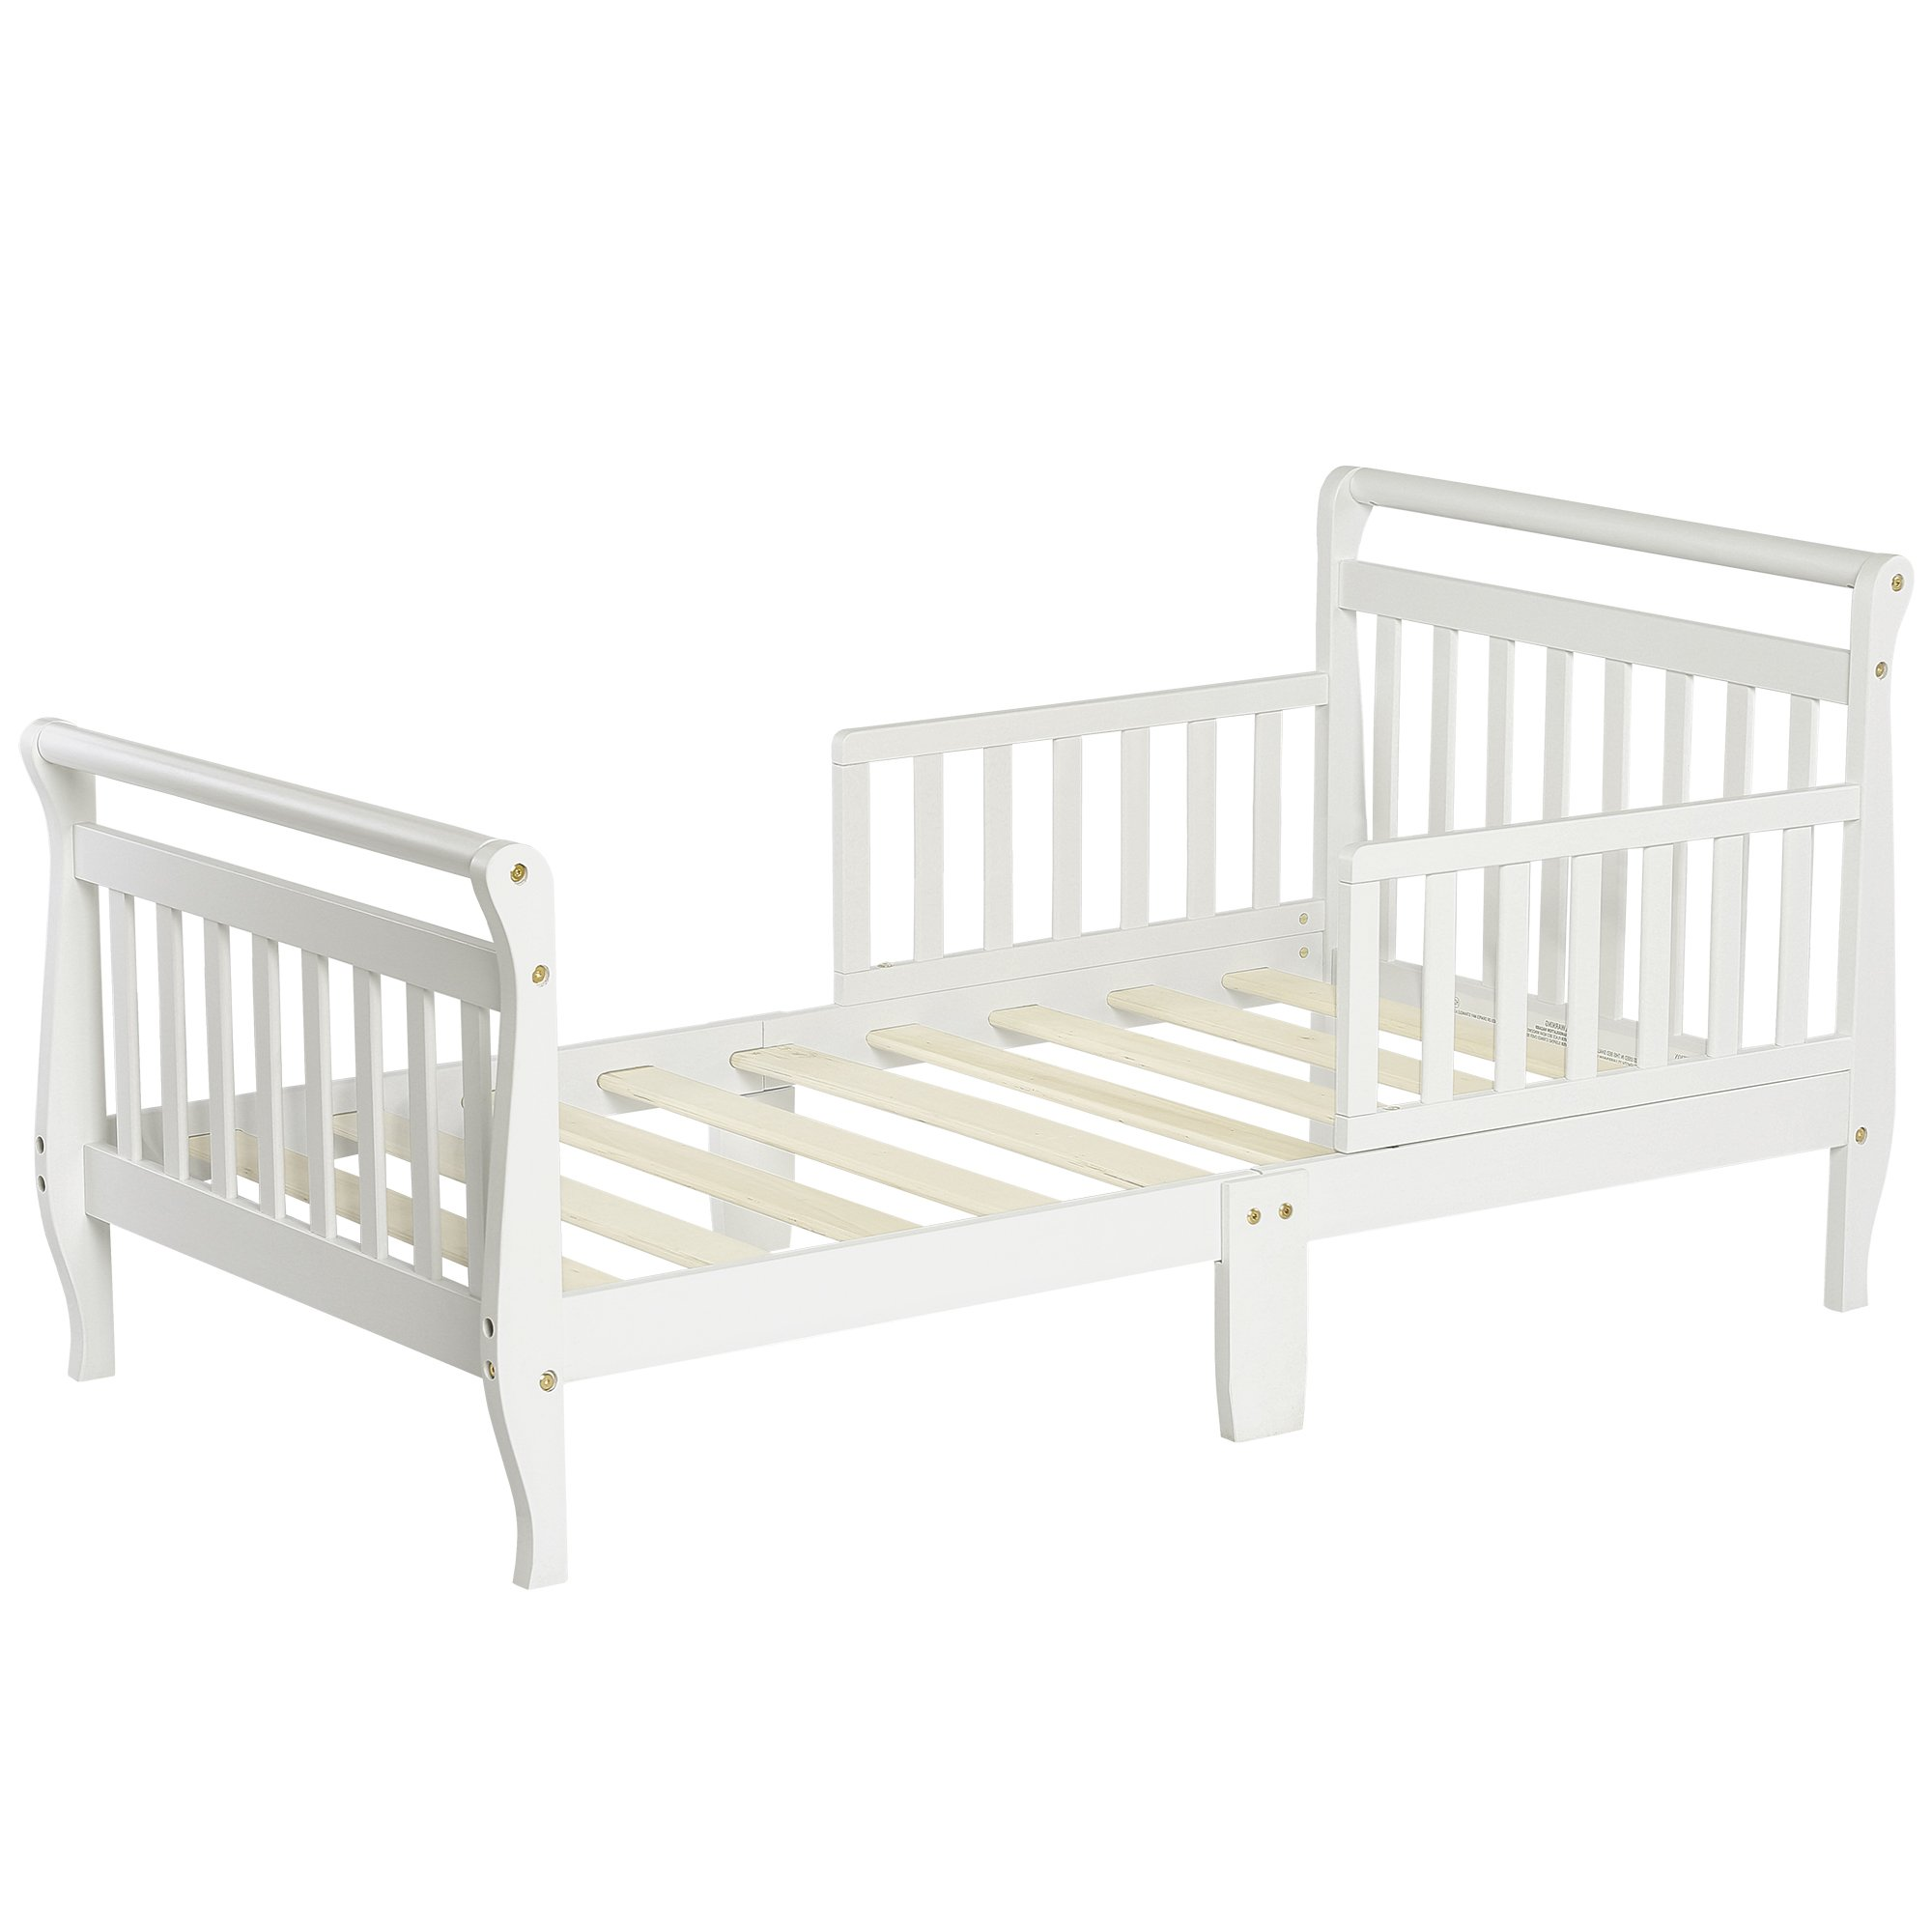 Dream On Me Classic Sleigh Toddler Bed, White by Dream On Me